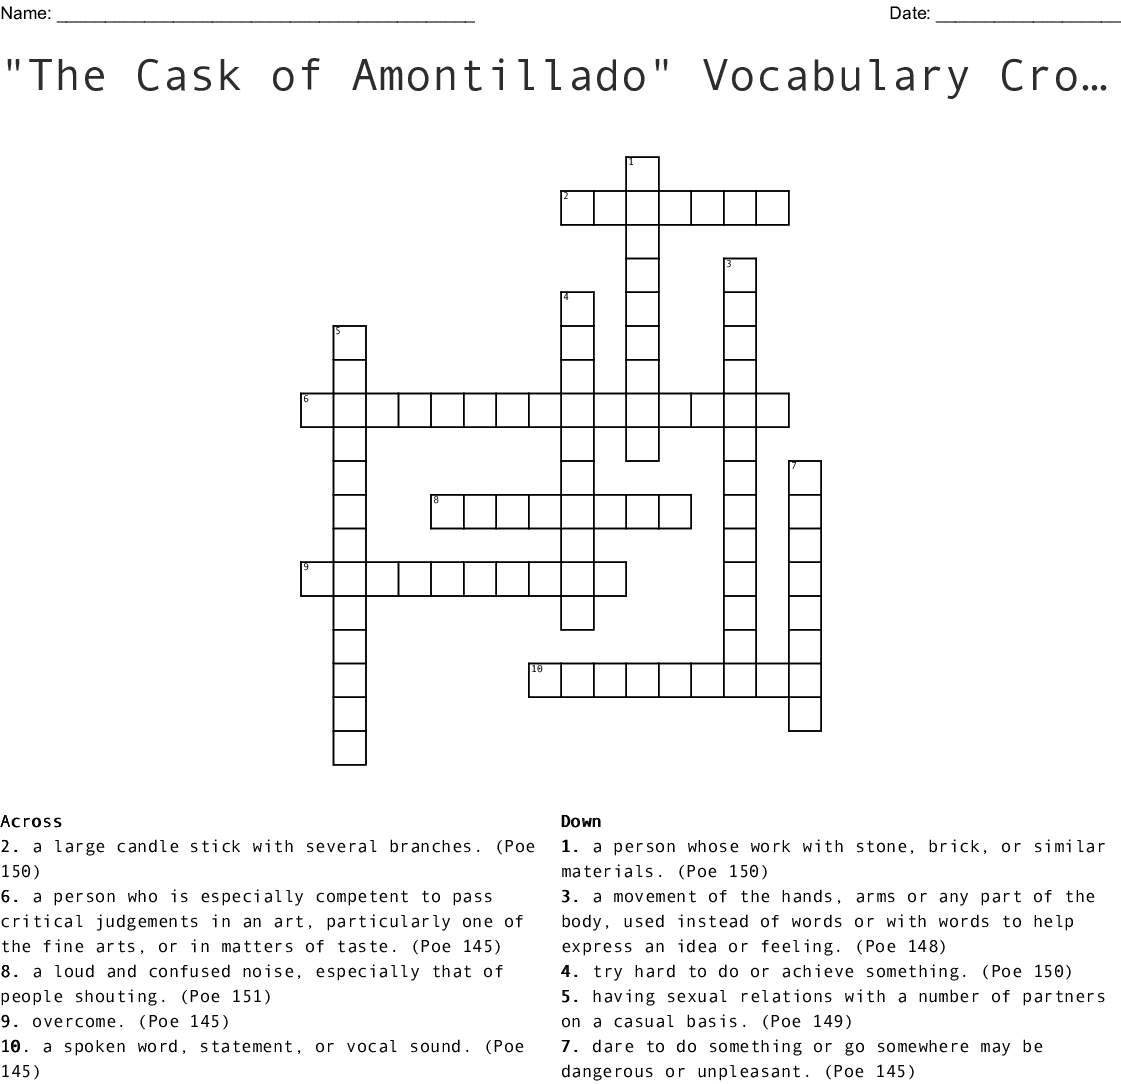 The Cask Of Amontillado Vocabulary Worksheet Answers